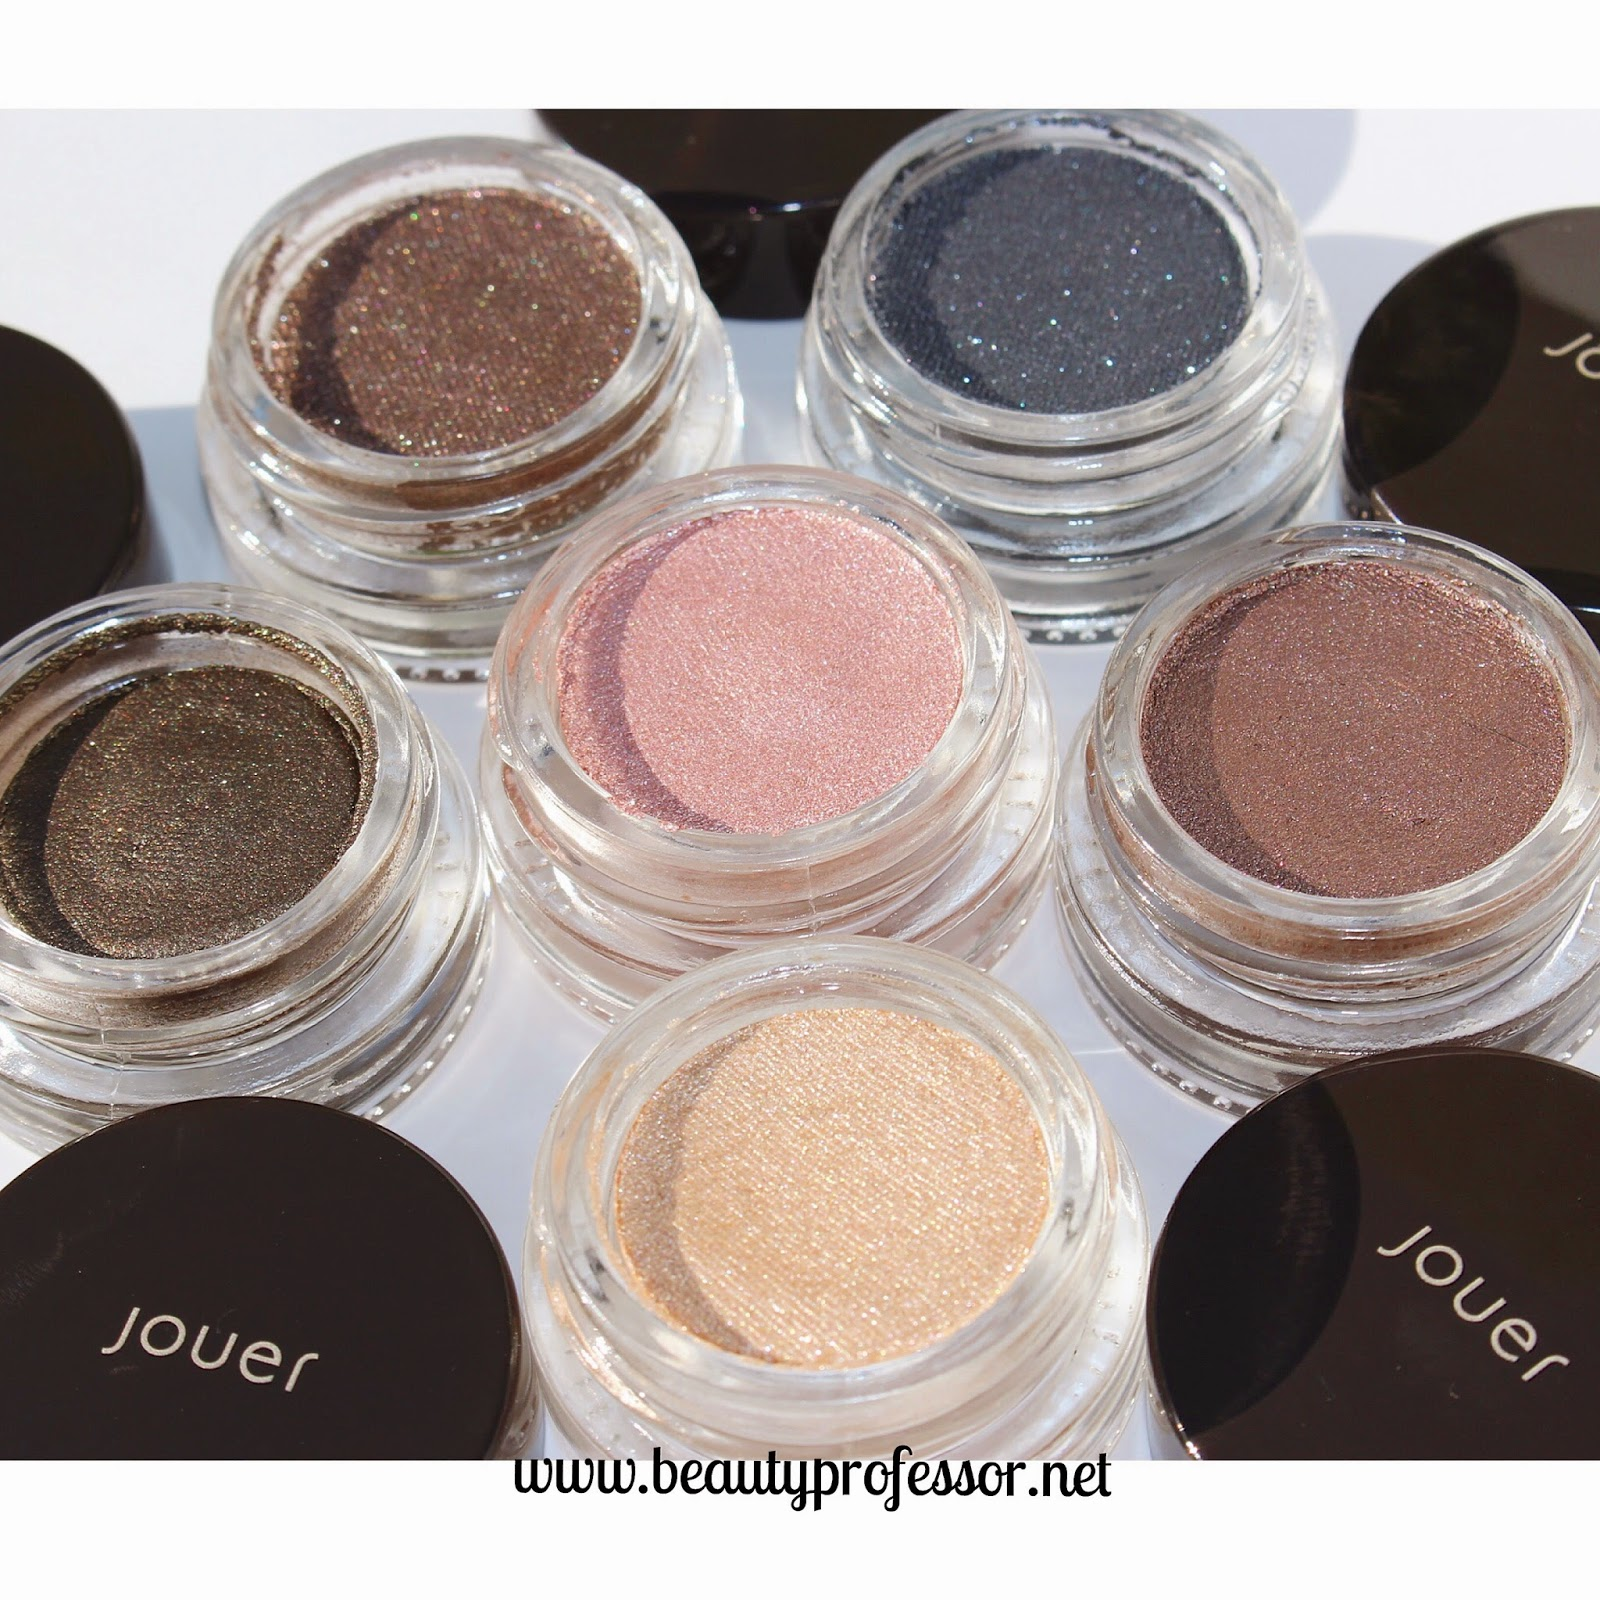 jouer long-wear creme mousse eyeshadow